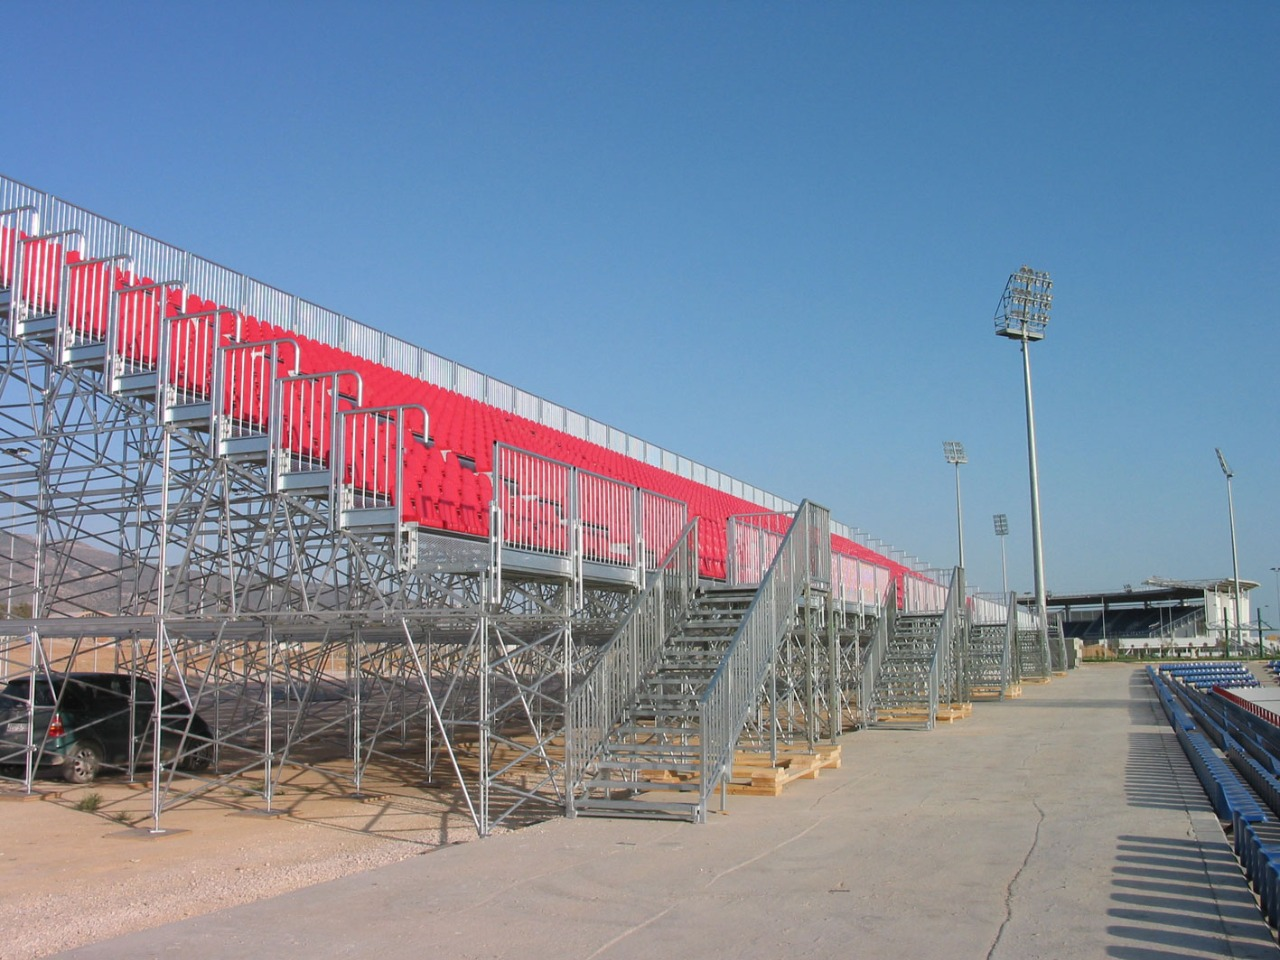 Gallery foto n.1 Prefabricated stand G2M15/2 - 2004 Olympic Games